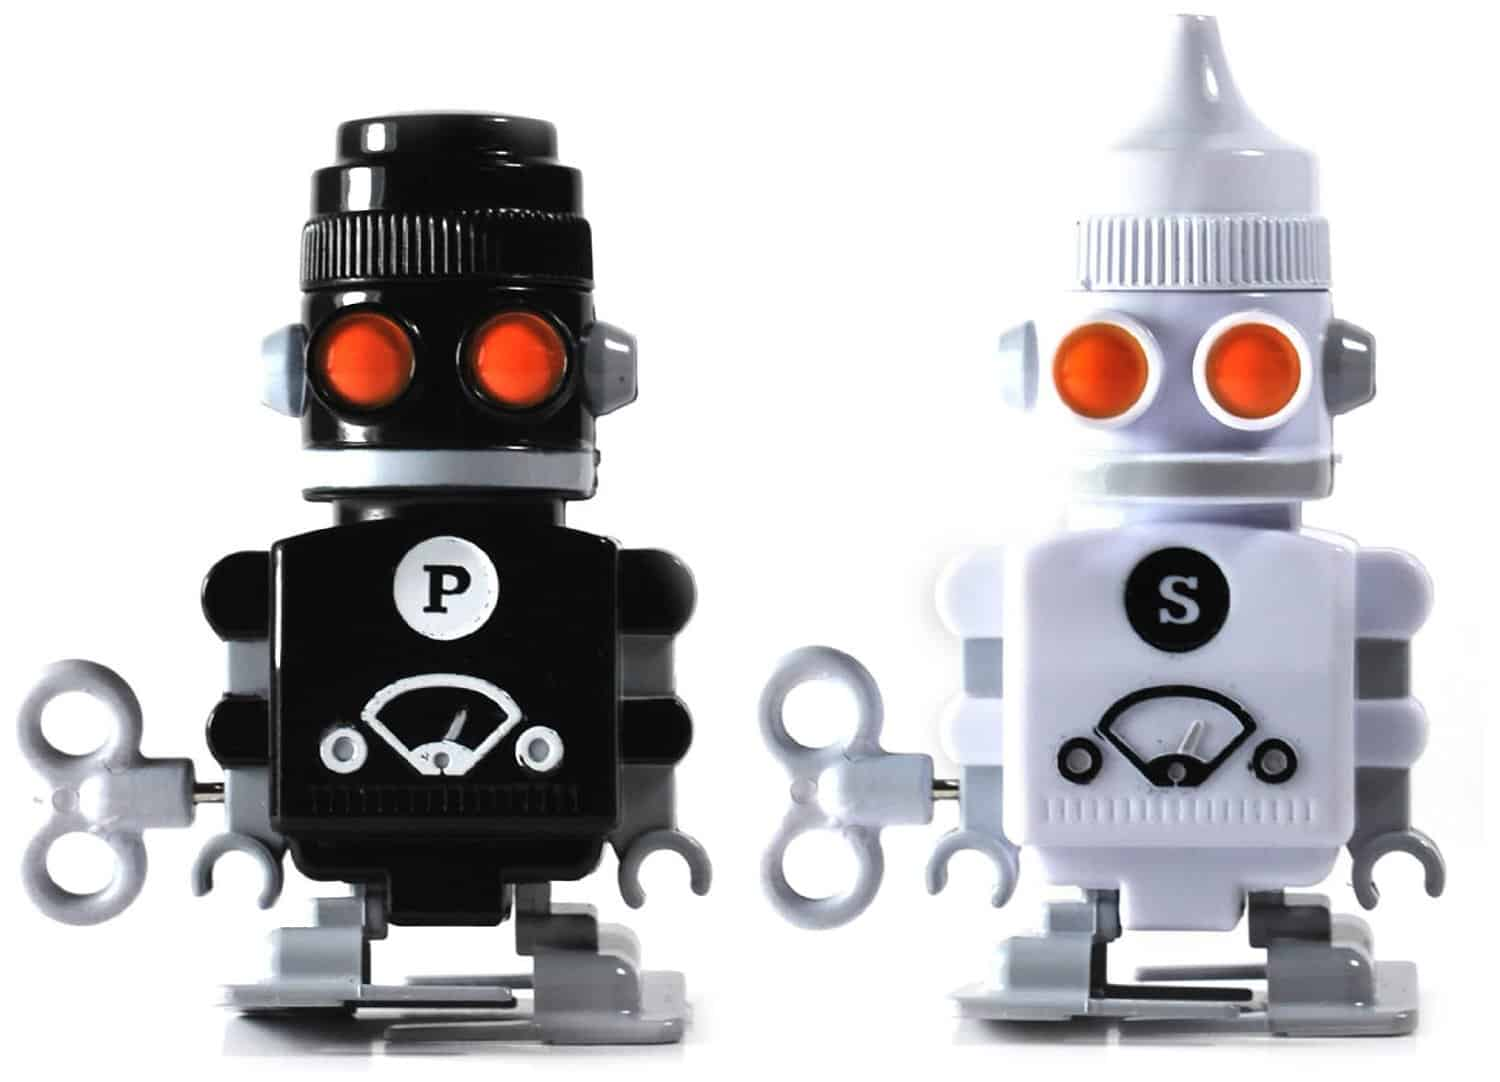 Salt and Pepper Bots Wind Up